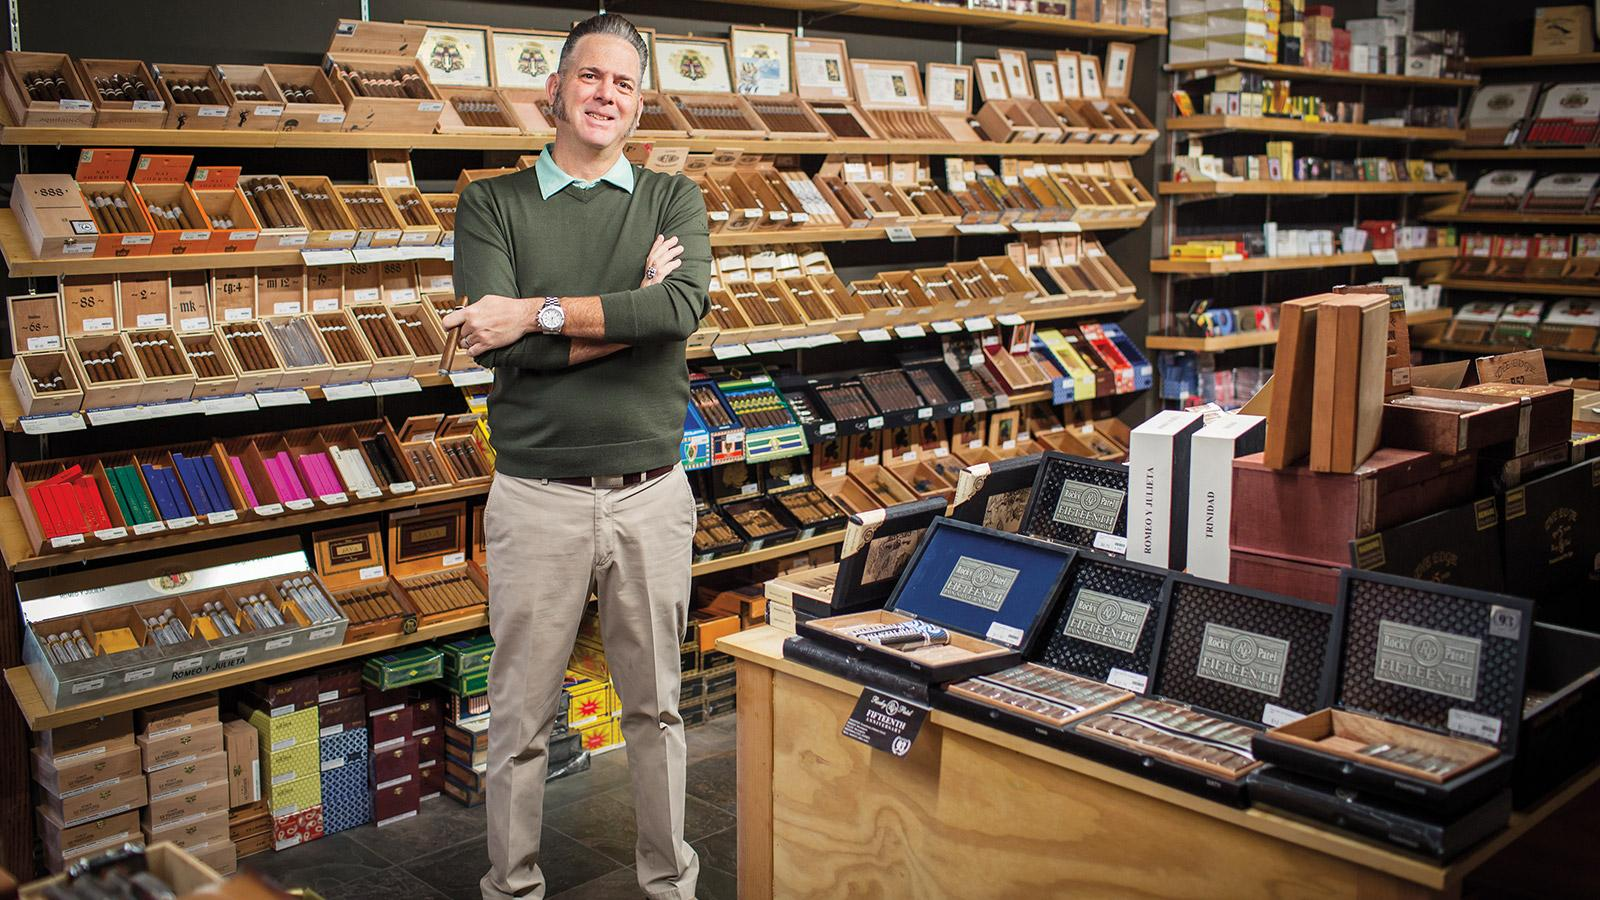 Giolito owns a Reno, Nevada, smoke shop called Fumare. Its walk-in humidor houses the Illusione portfolio as well as plenty of third-party cigar lines.